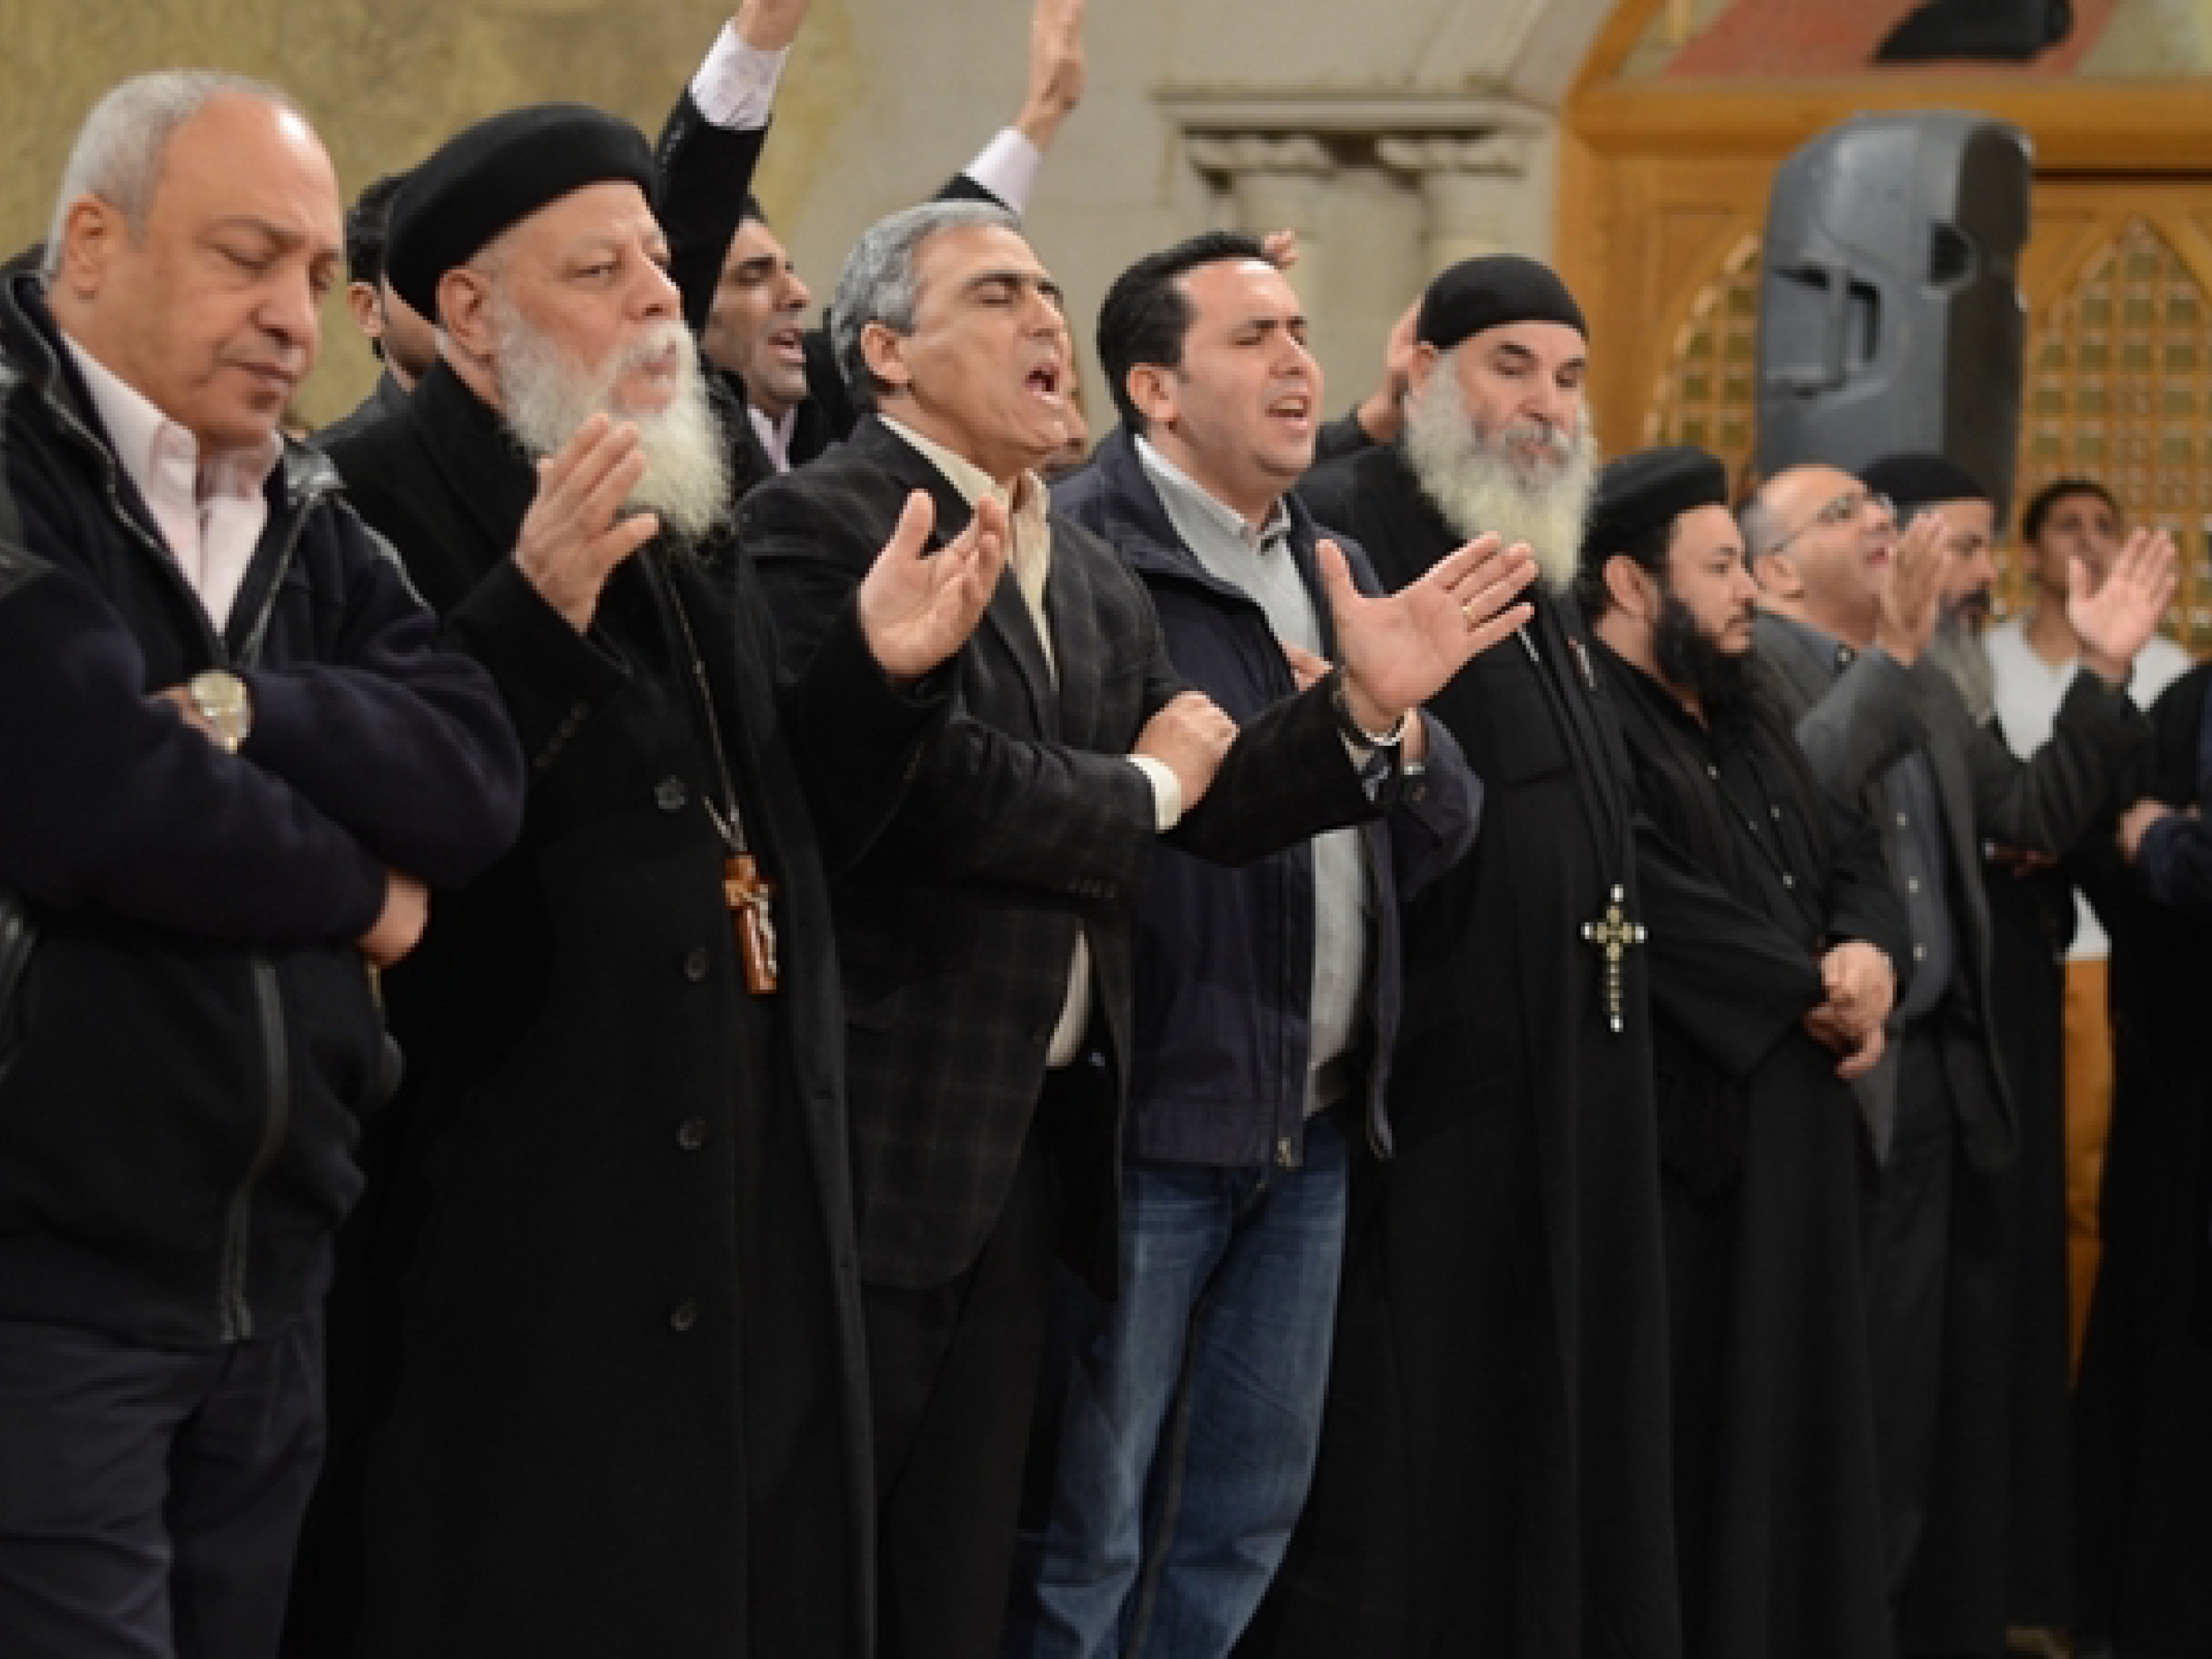 Coptic Christians in Worship